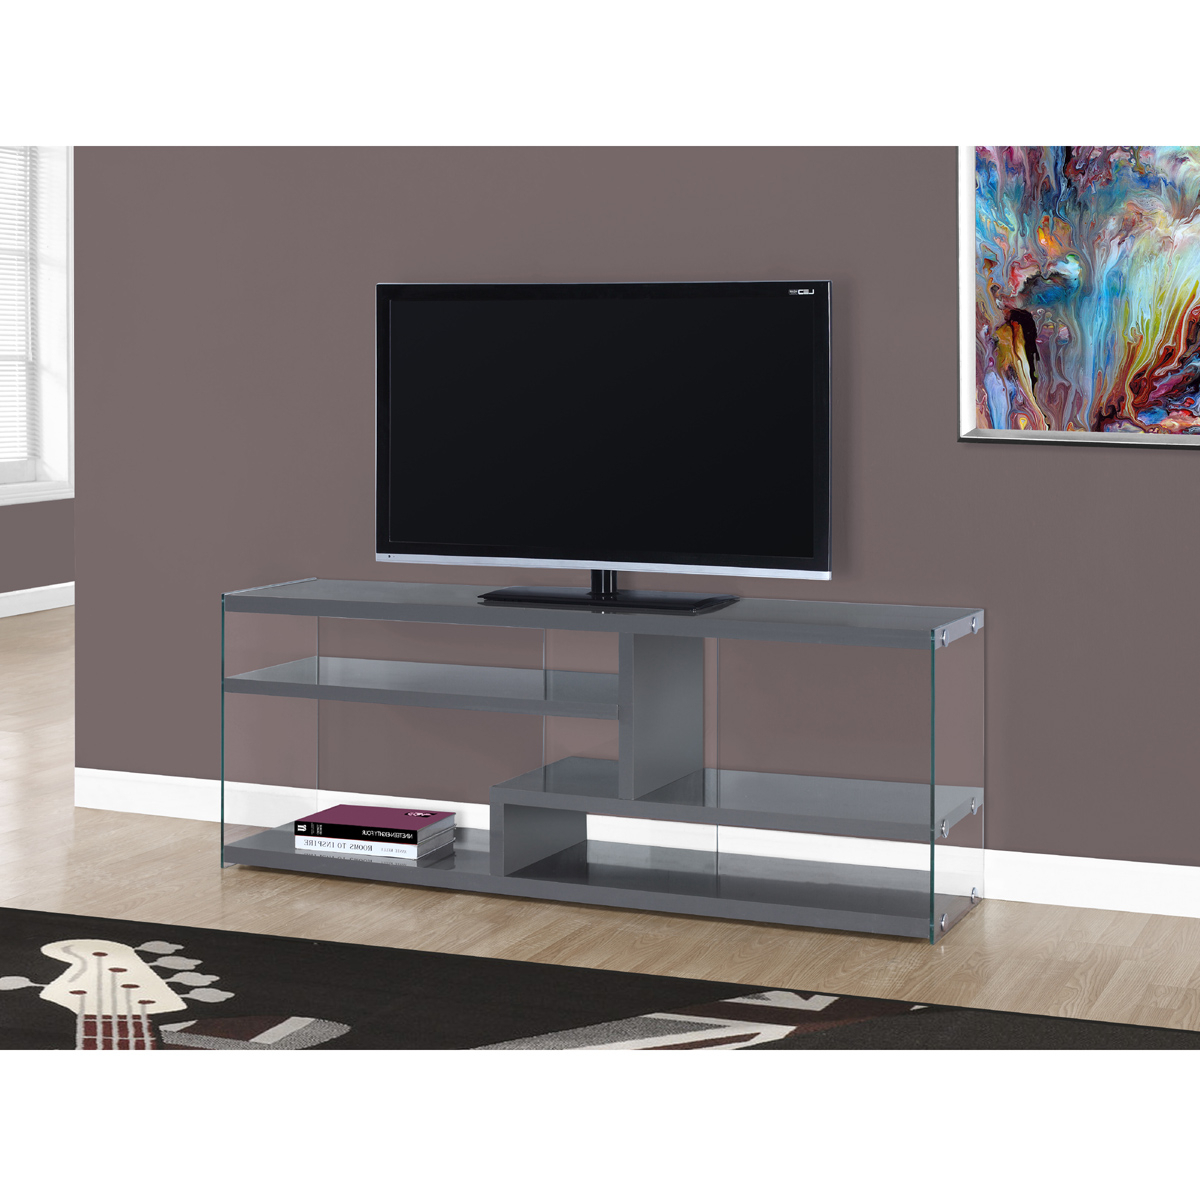 Well Liked Contemporary Tv Stands For Flat Screens With Regard To Vegas Tv Stand In Grey (View 4 of 20)